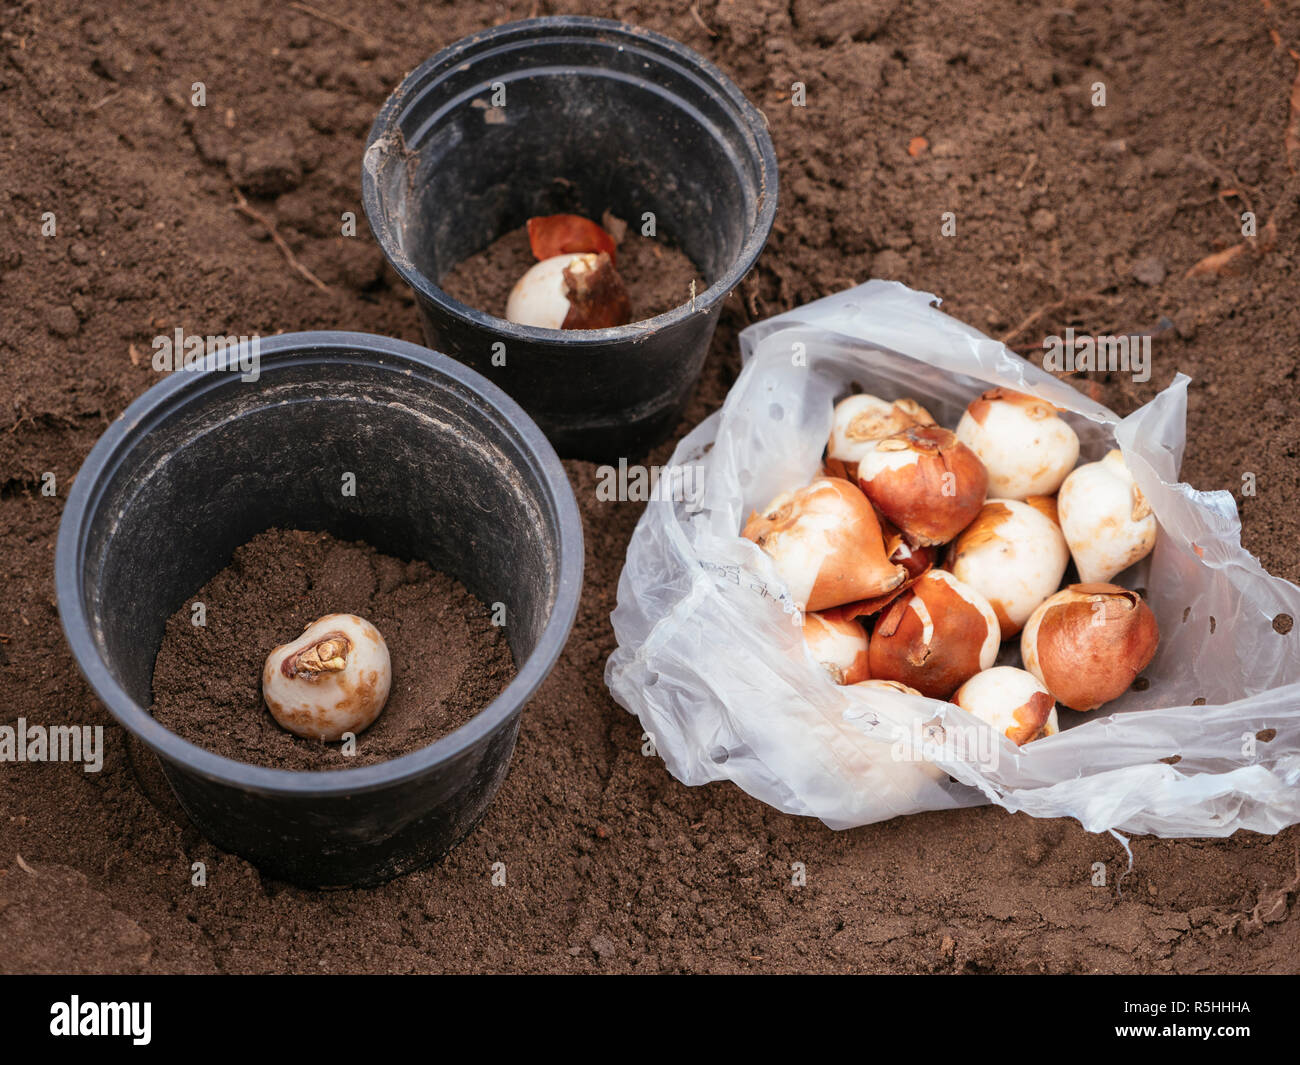 Tulip bulbs being planted in plastic pots to protect them against rodents. - Stock Image